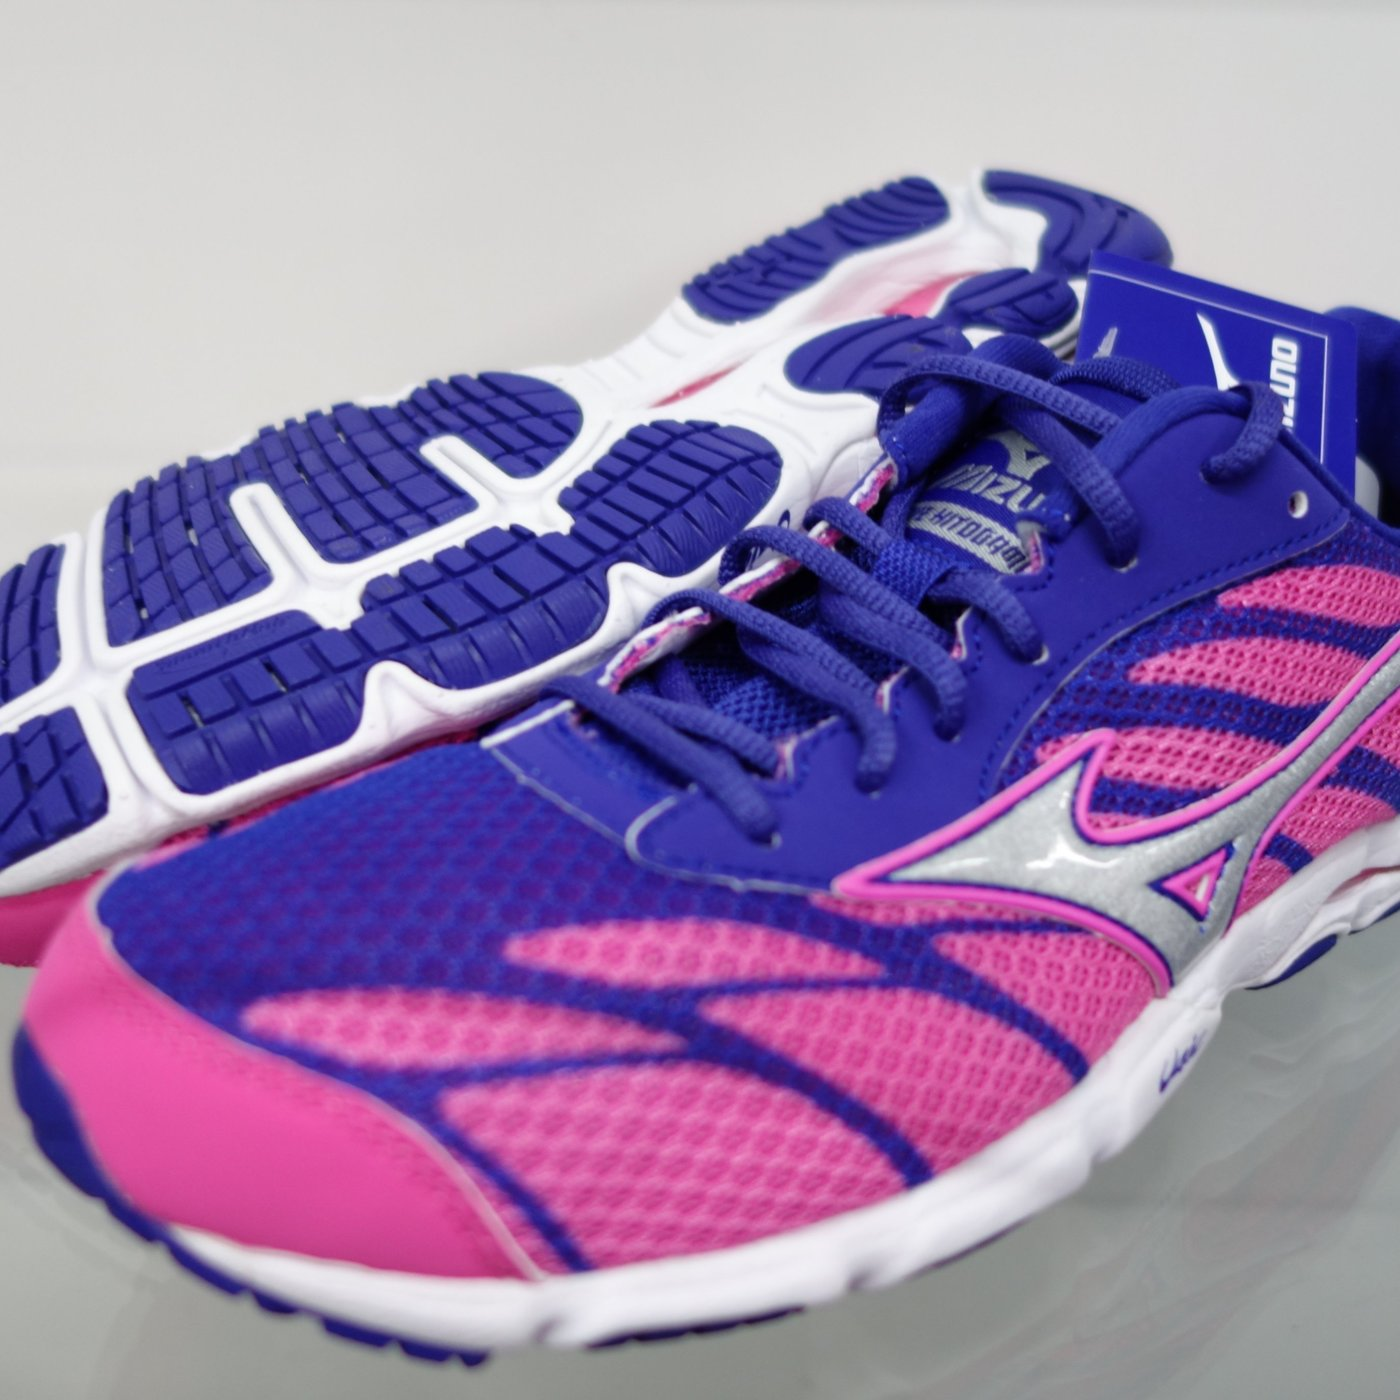 Mizuno Wave Hitogami 2015 Cheaper Than Retail Price Buy Clothing Accessories And Lifestyle Products For Women Men